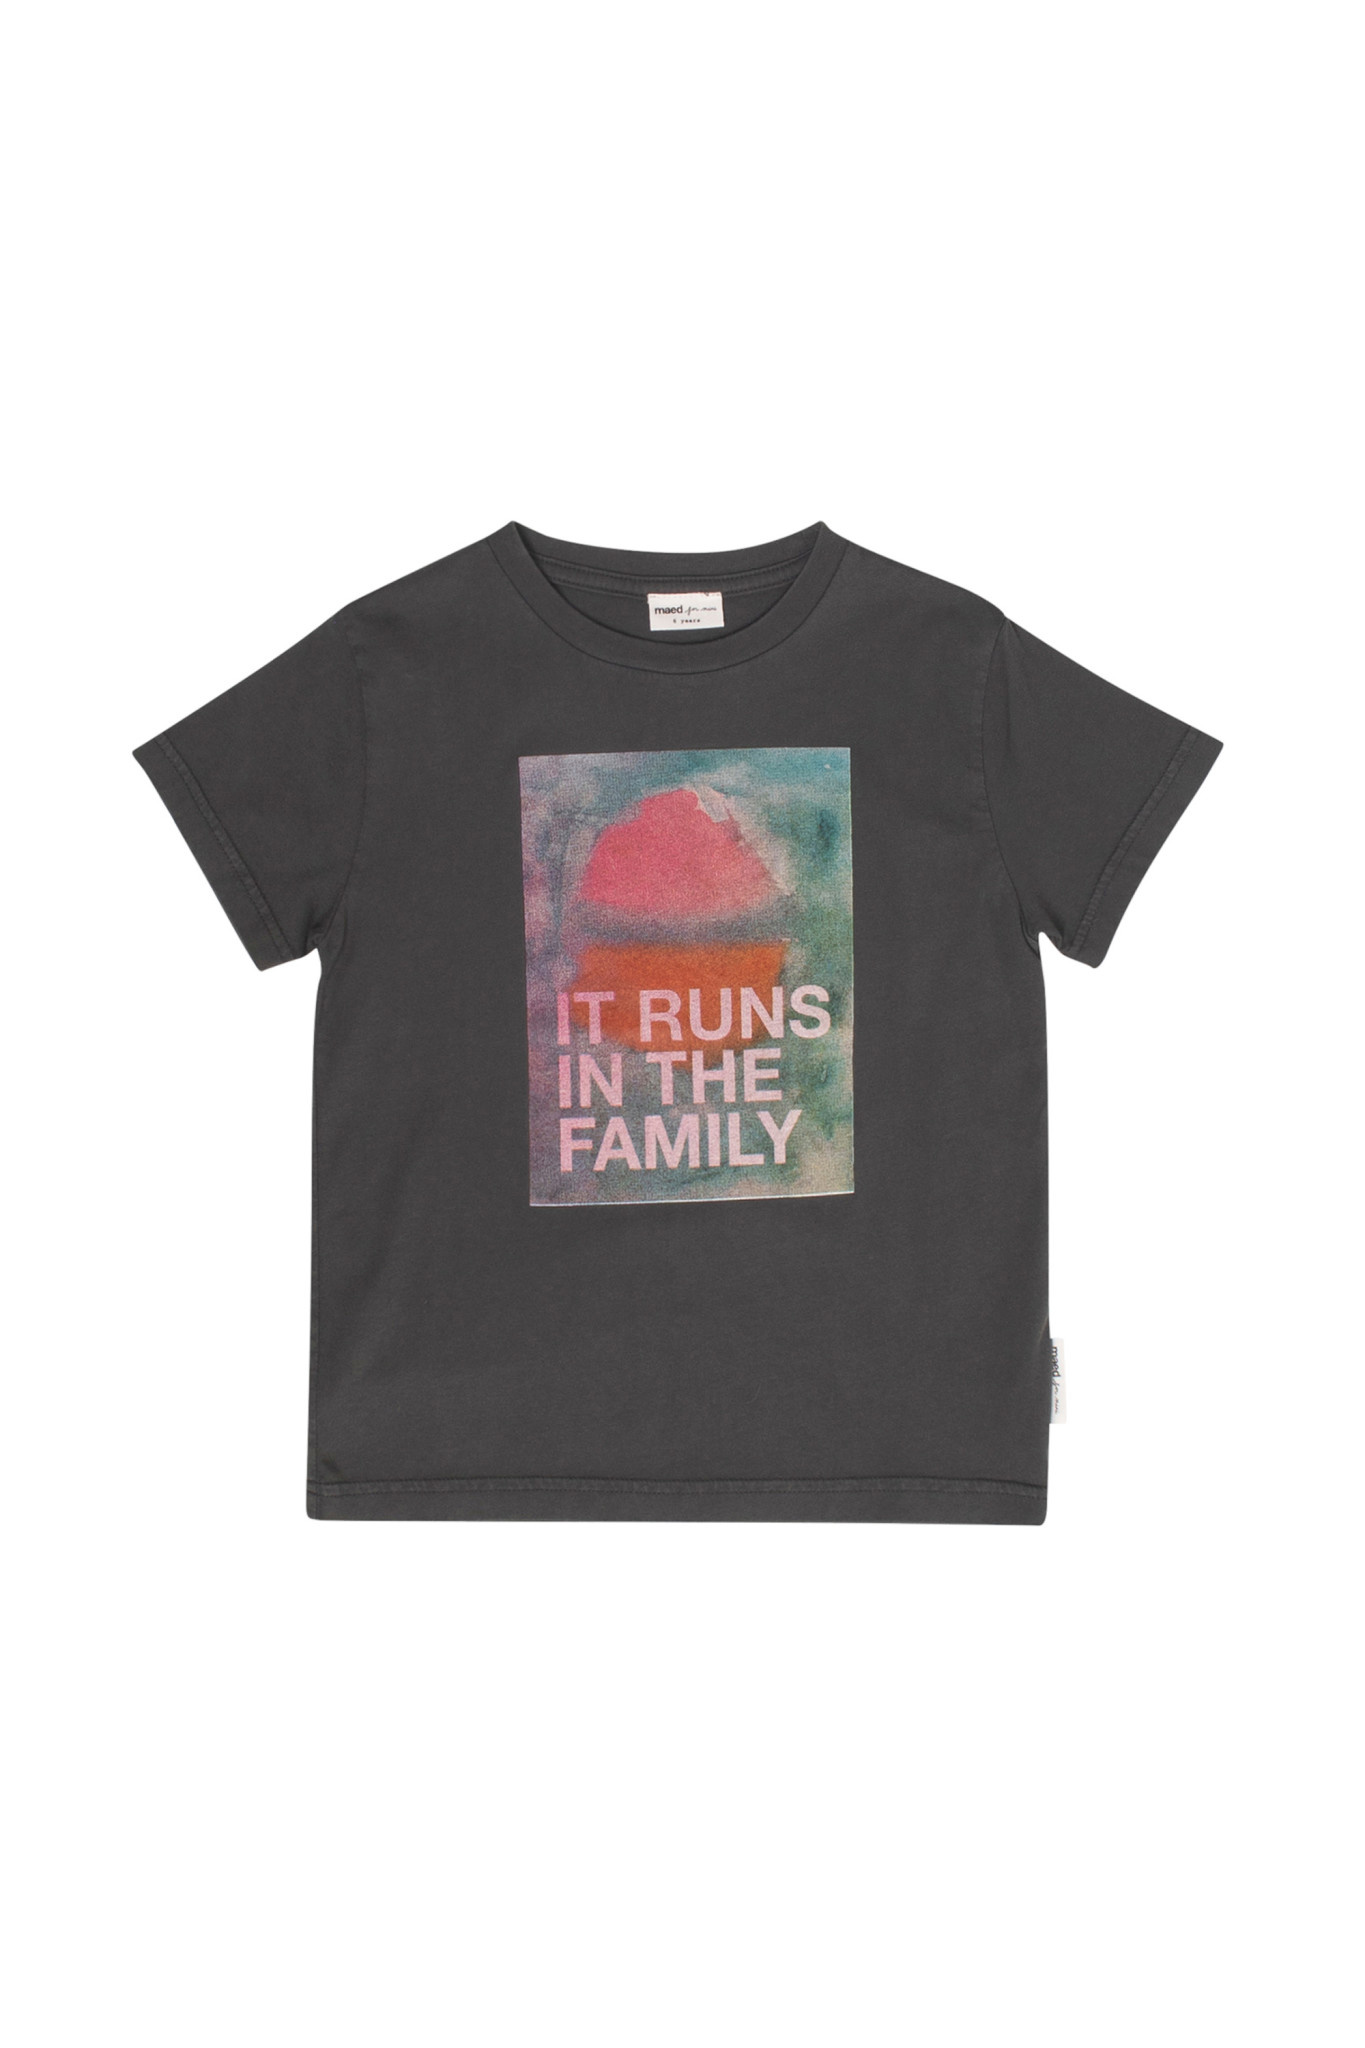 It runs in the family t-shirt-1